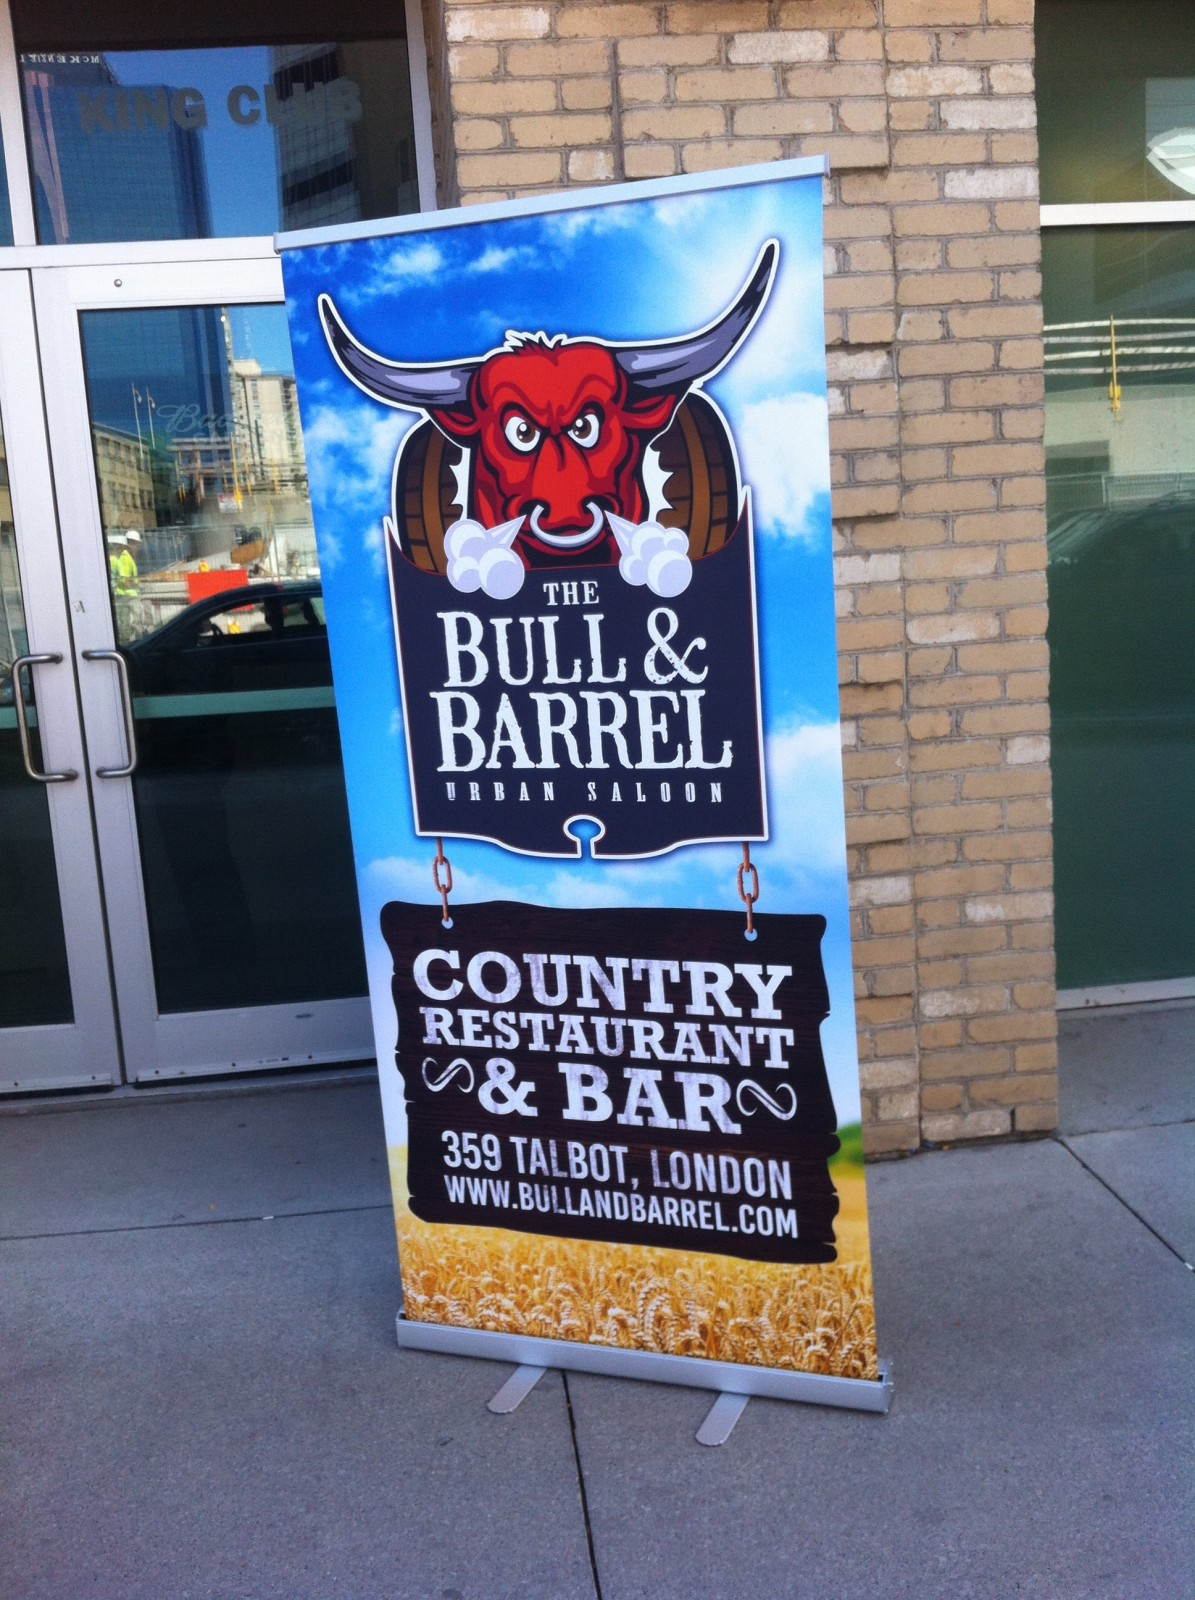 Up to 200 apply to Bull and Barrel, despite backlash